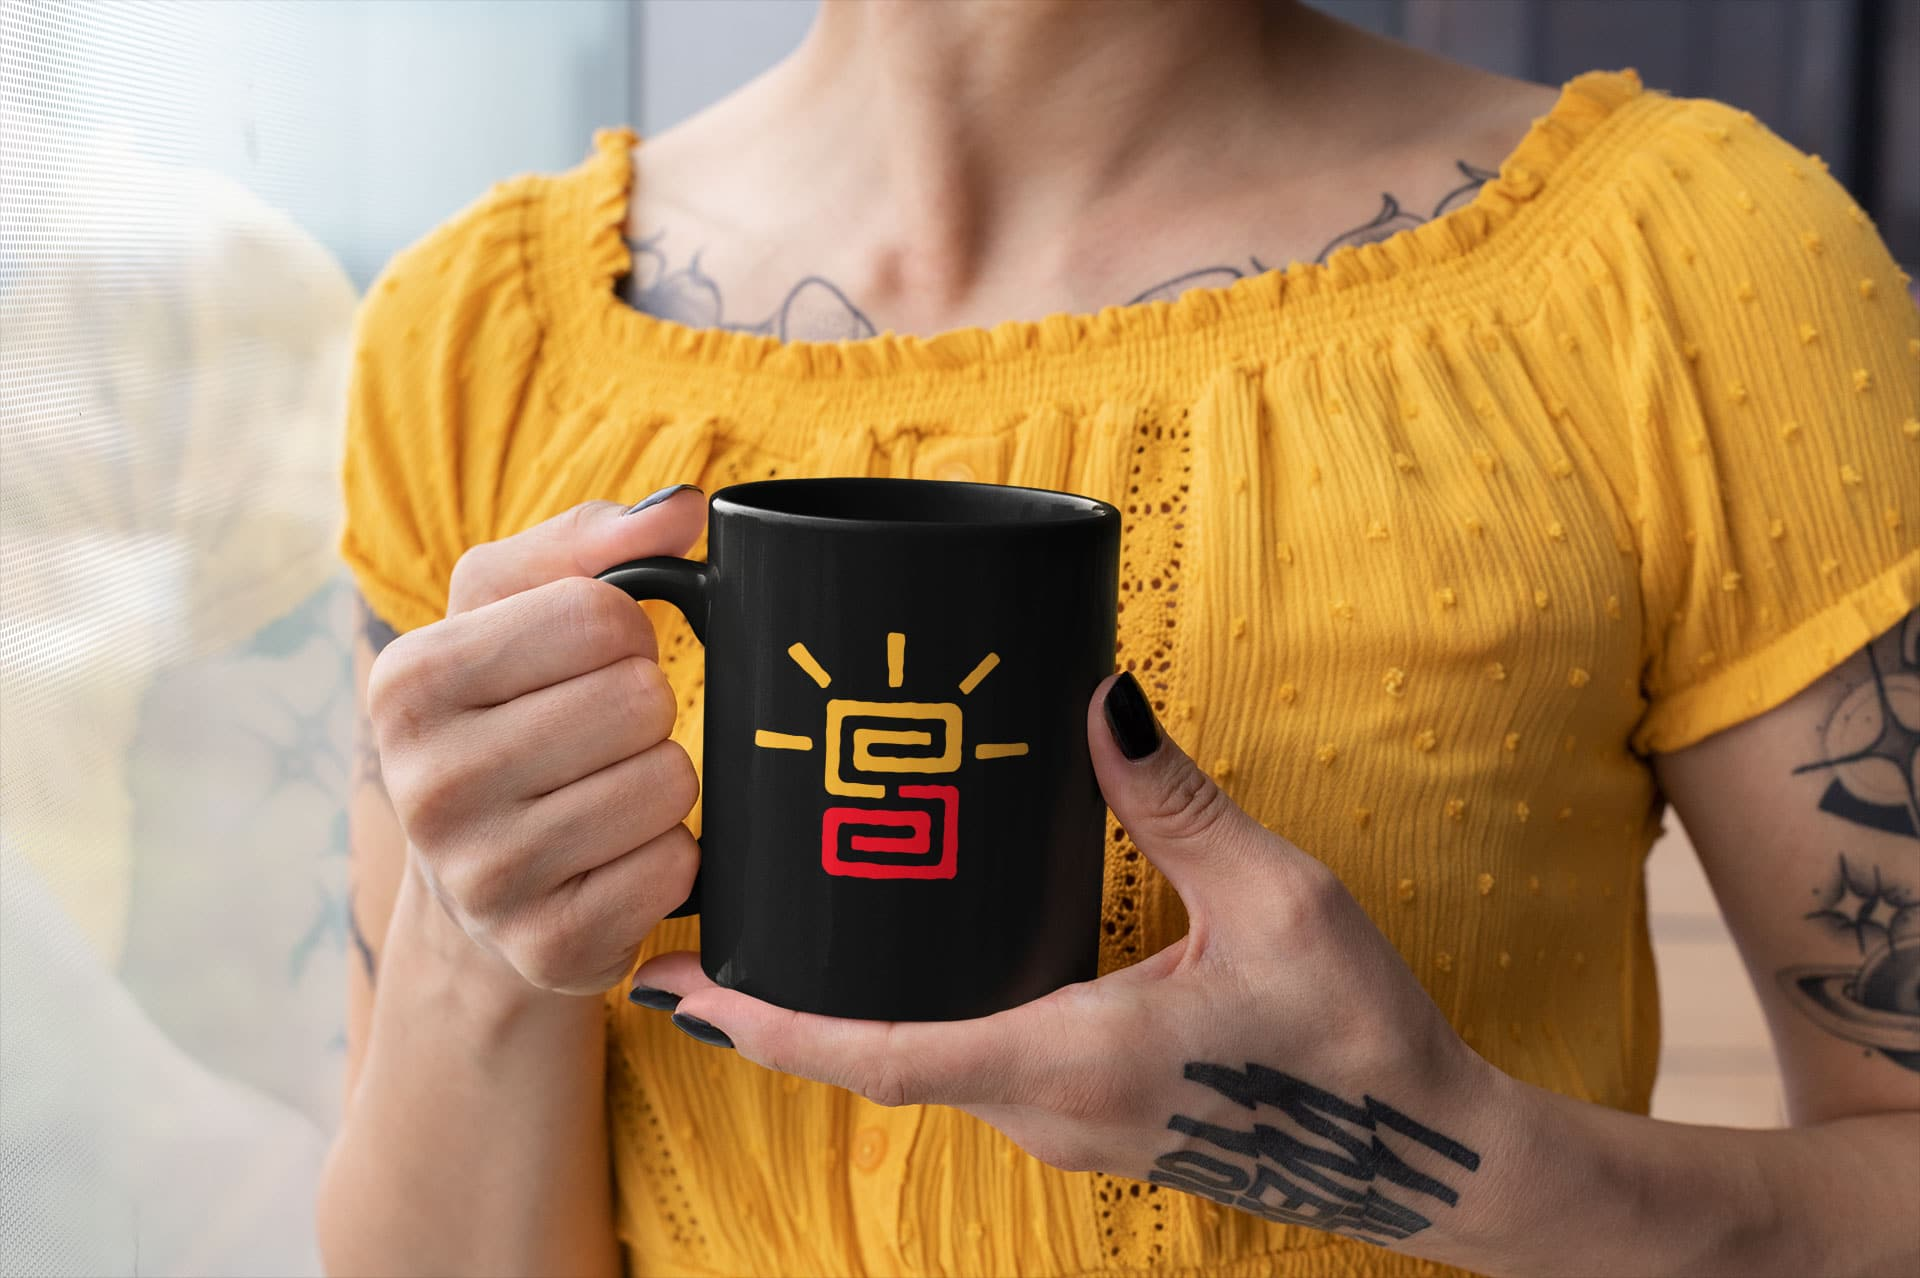 Soul Somatic logo design presented on a mug